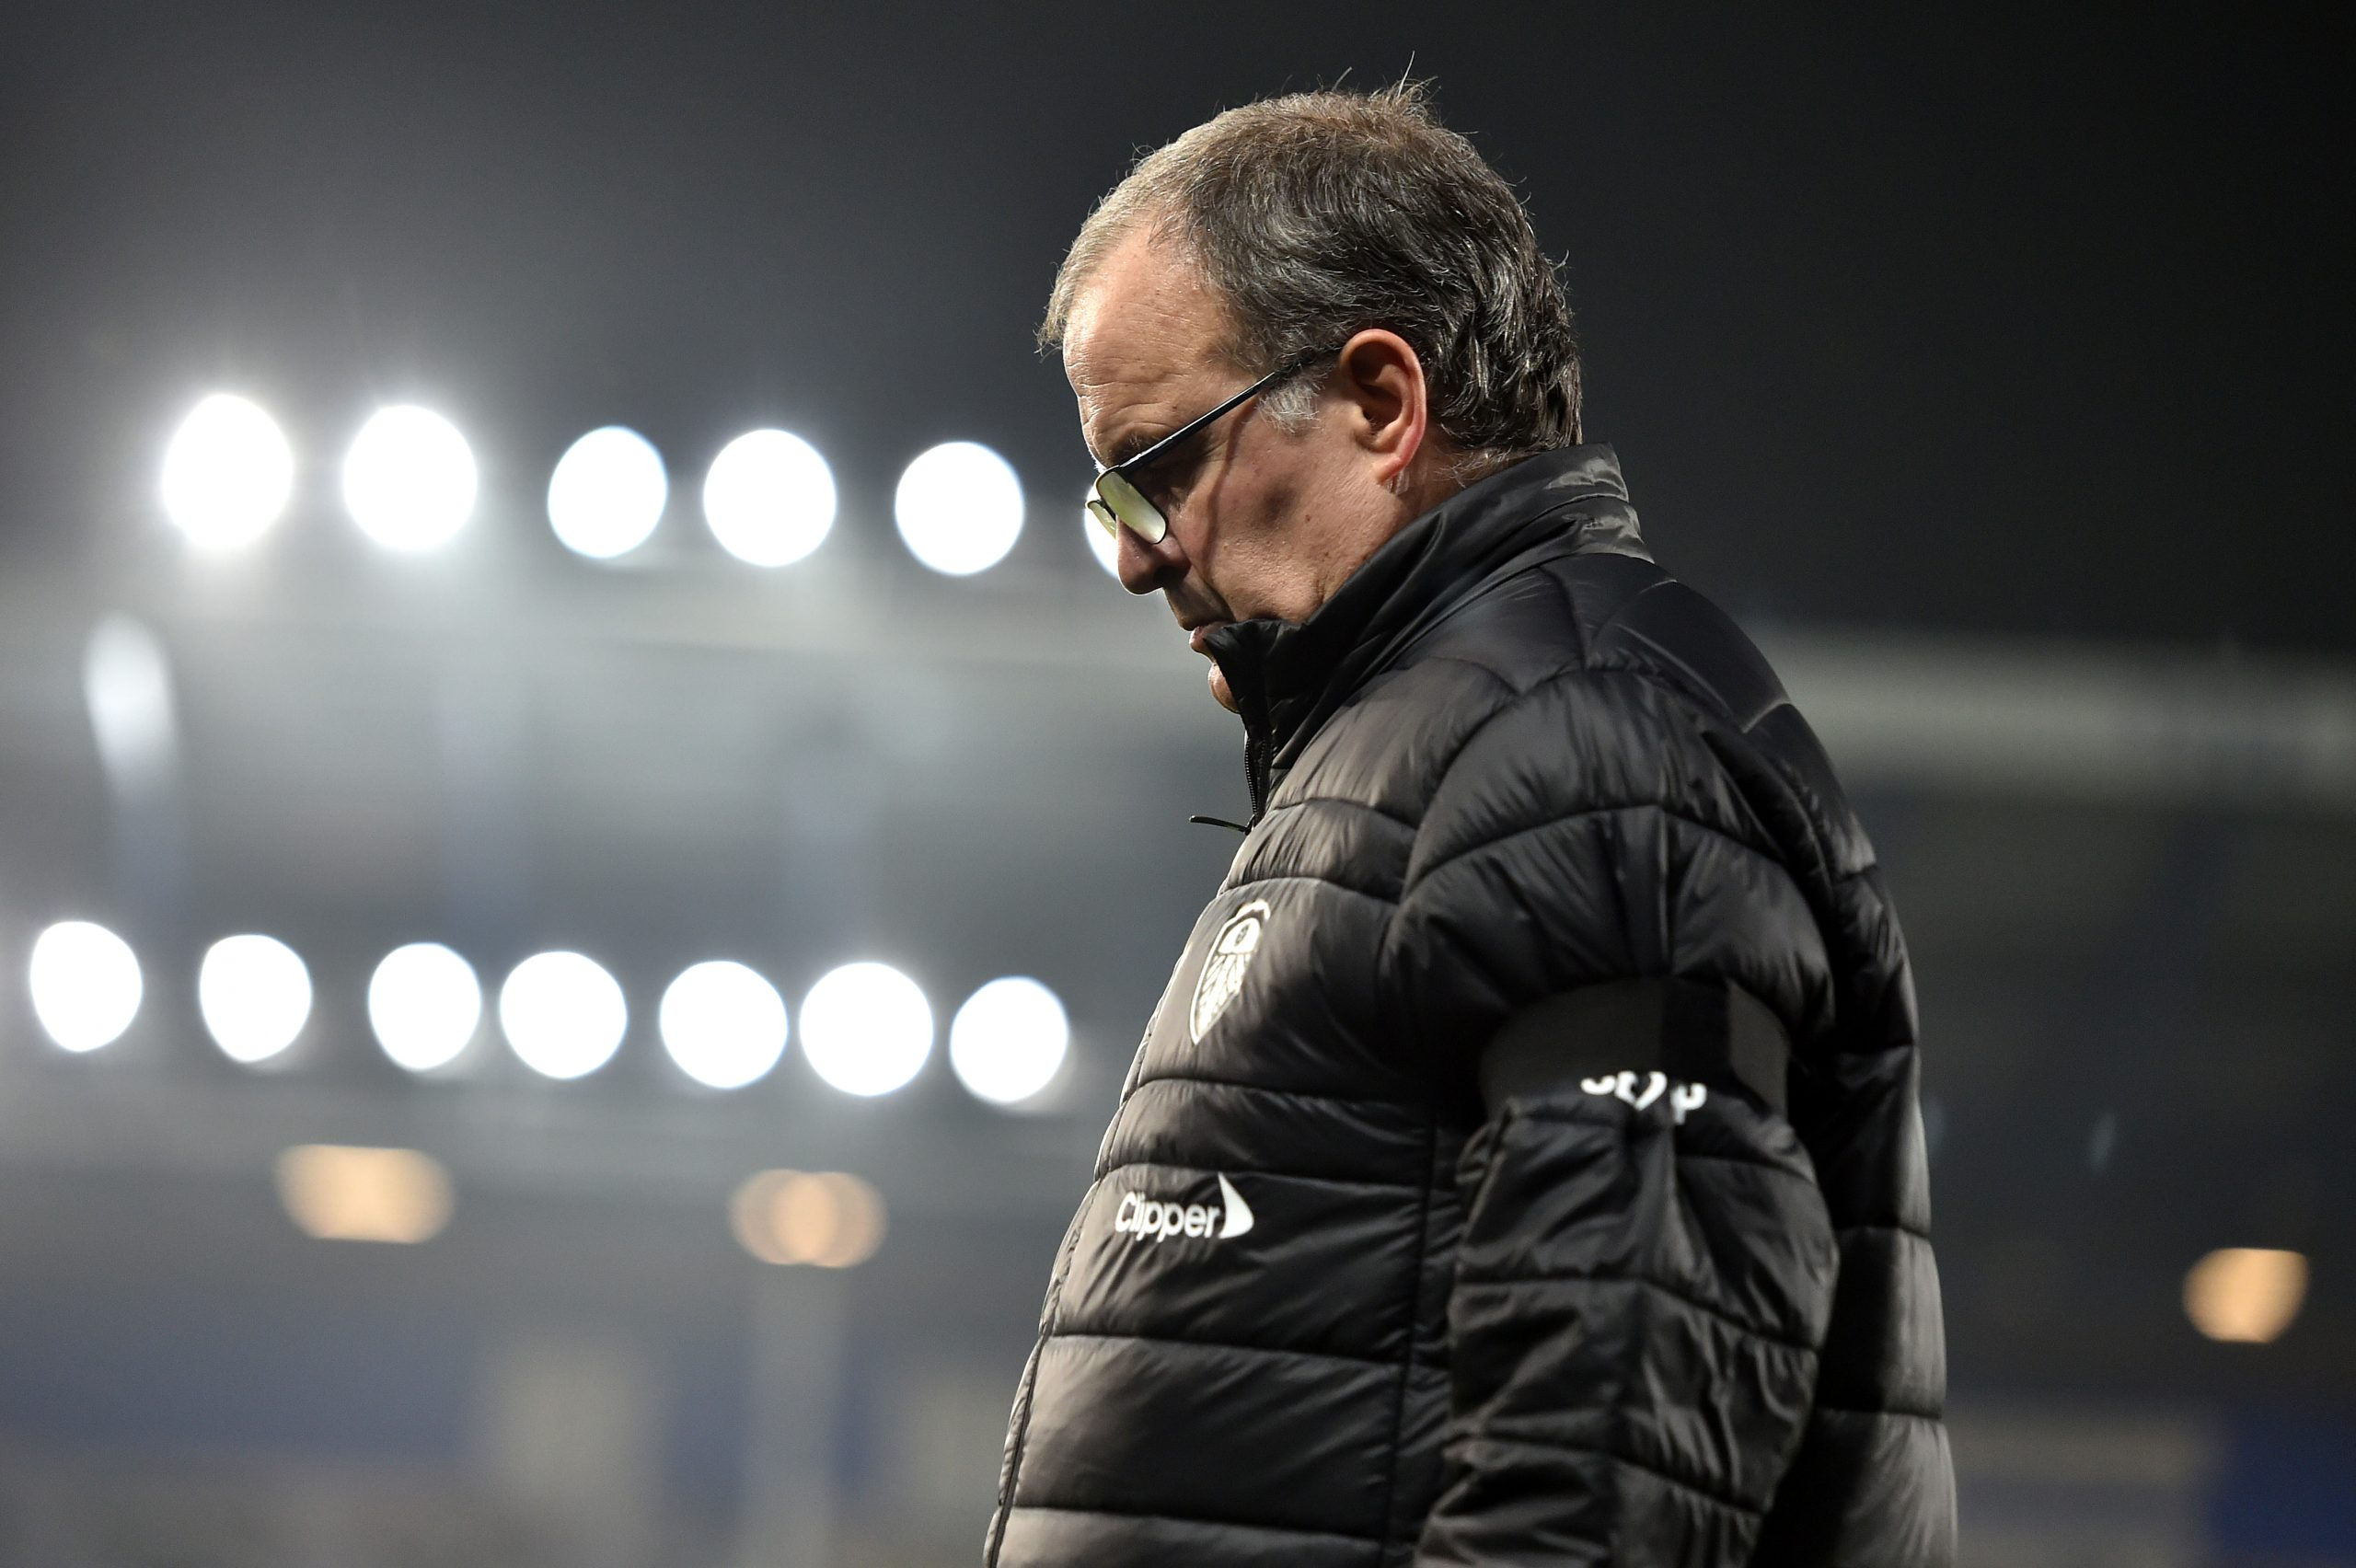 Leeds United will have 4 senior players out when they travel to face Chelsea this weekend. (GETTY Images)